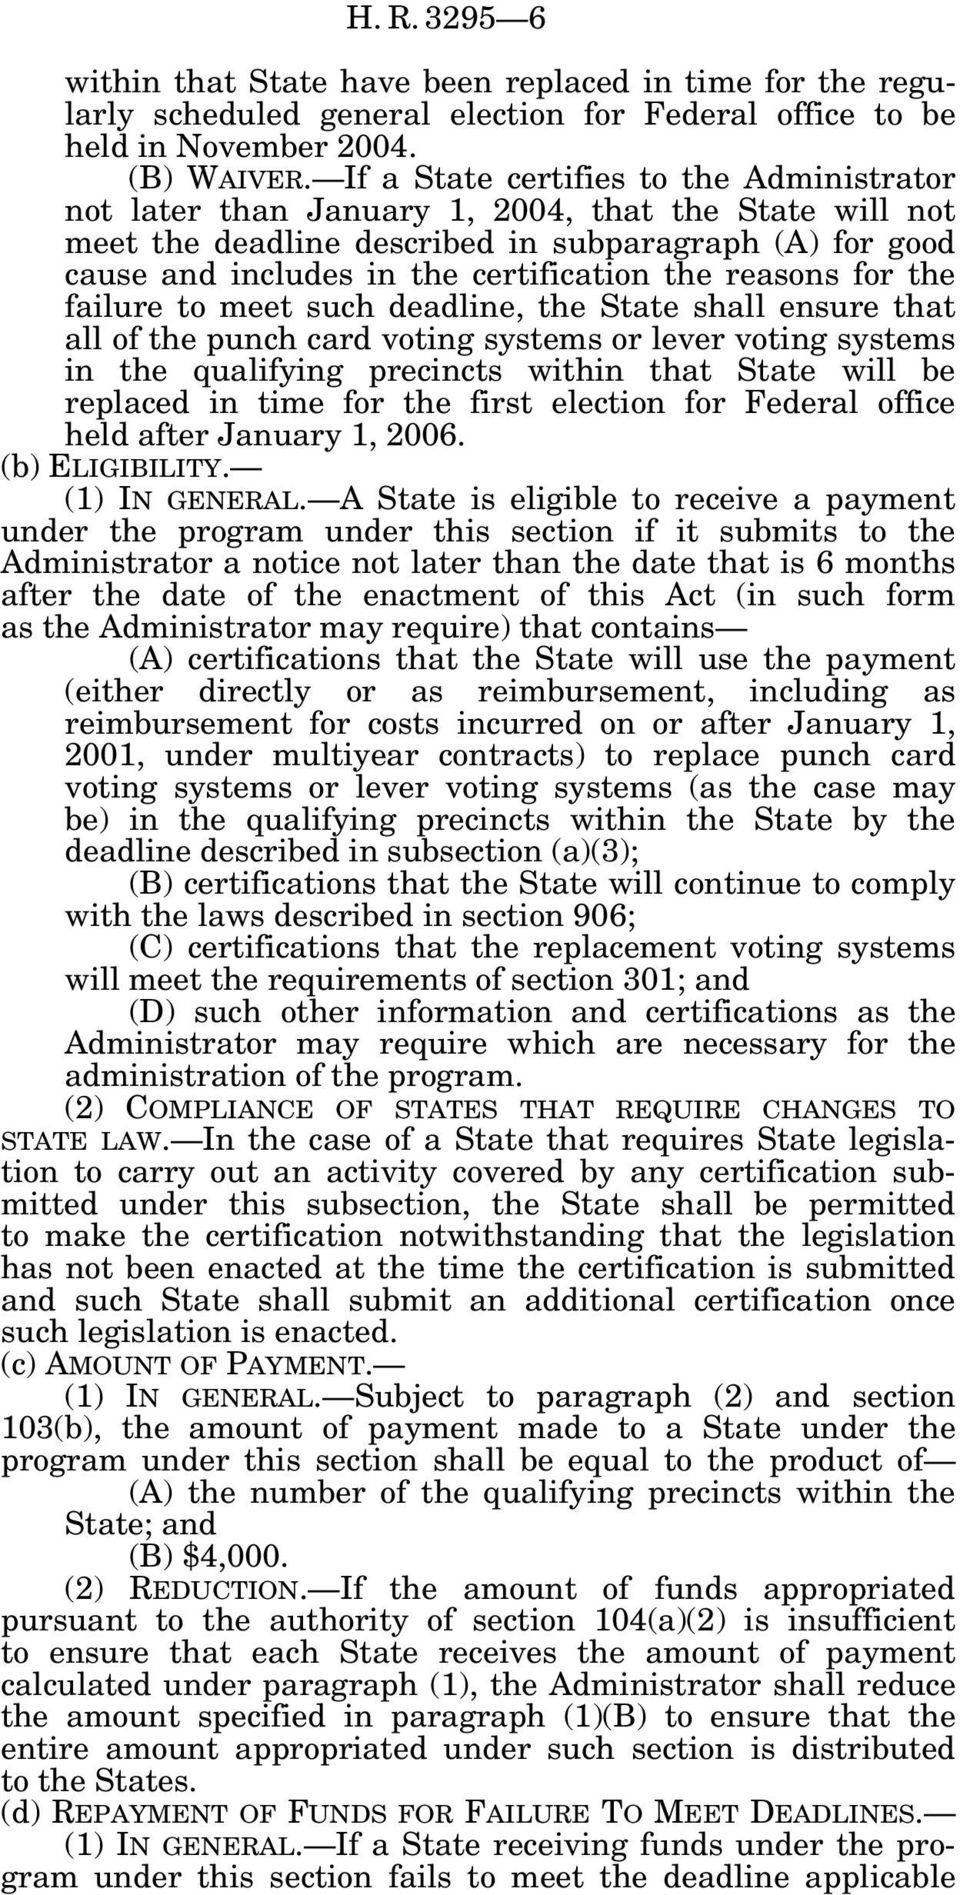 reasons for the failure to meet such deadline, the State shall ensure that all of the punch card voting systems or lever voting systems in the qualifying precincts within that State will be replaced